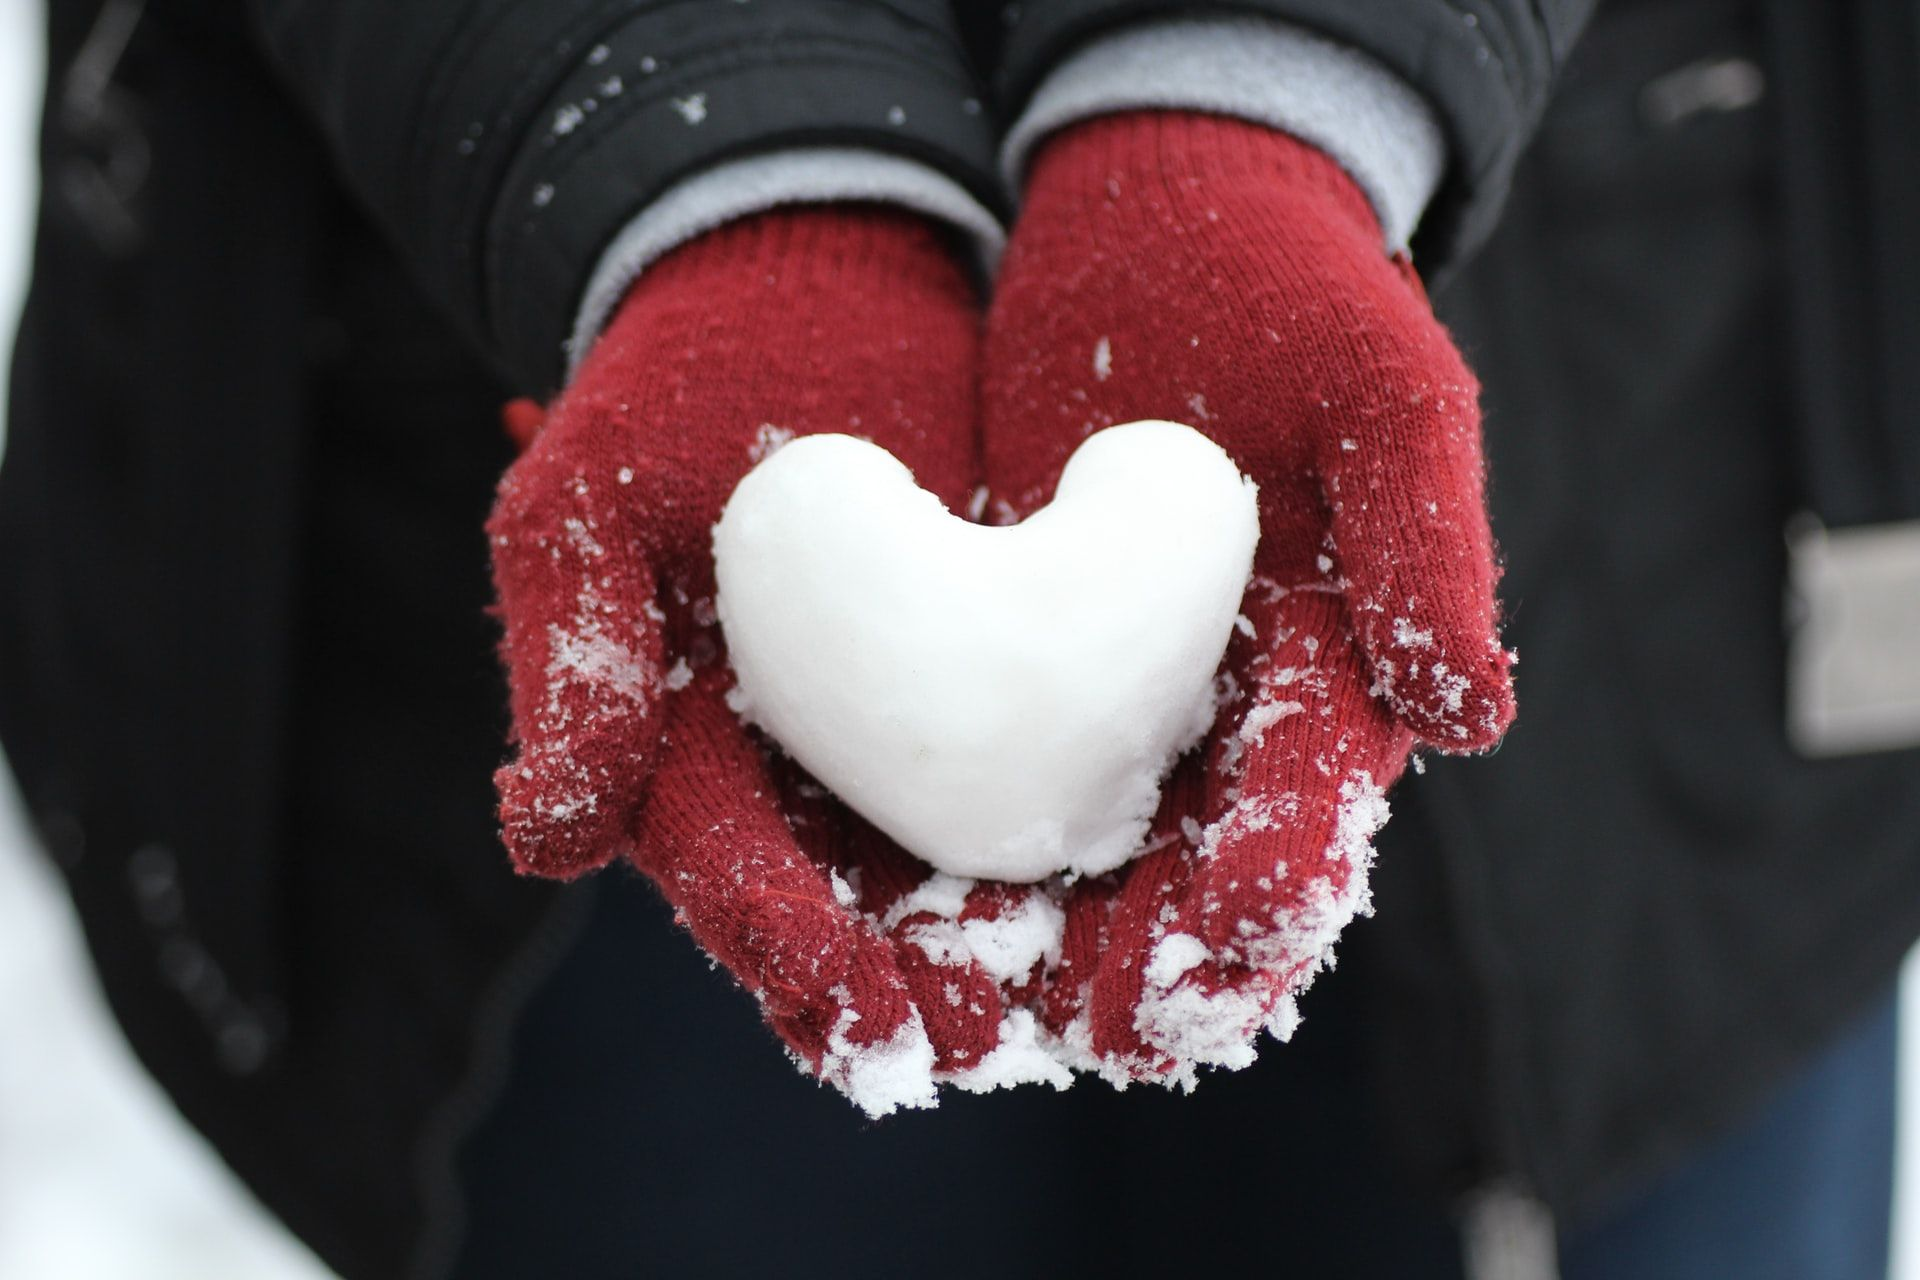 A woman cupping her hands in a red pair of winter gloves and holding a small snowball